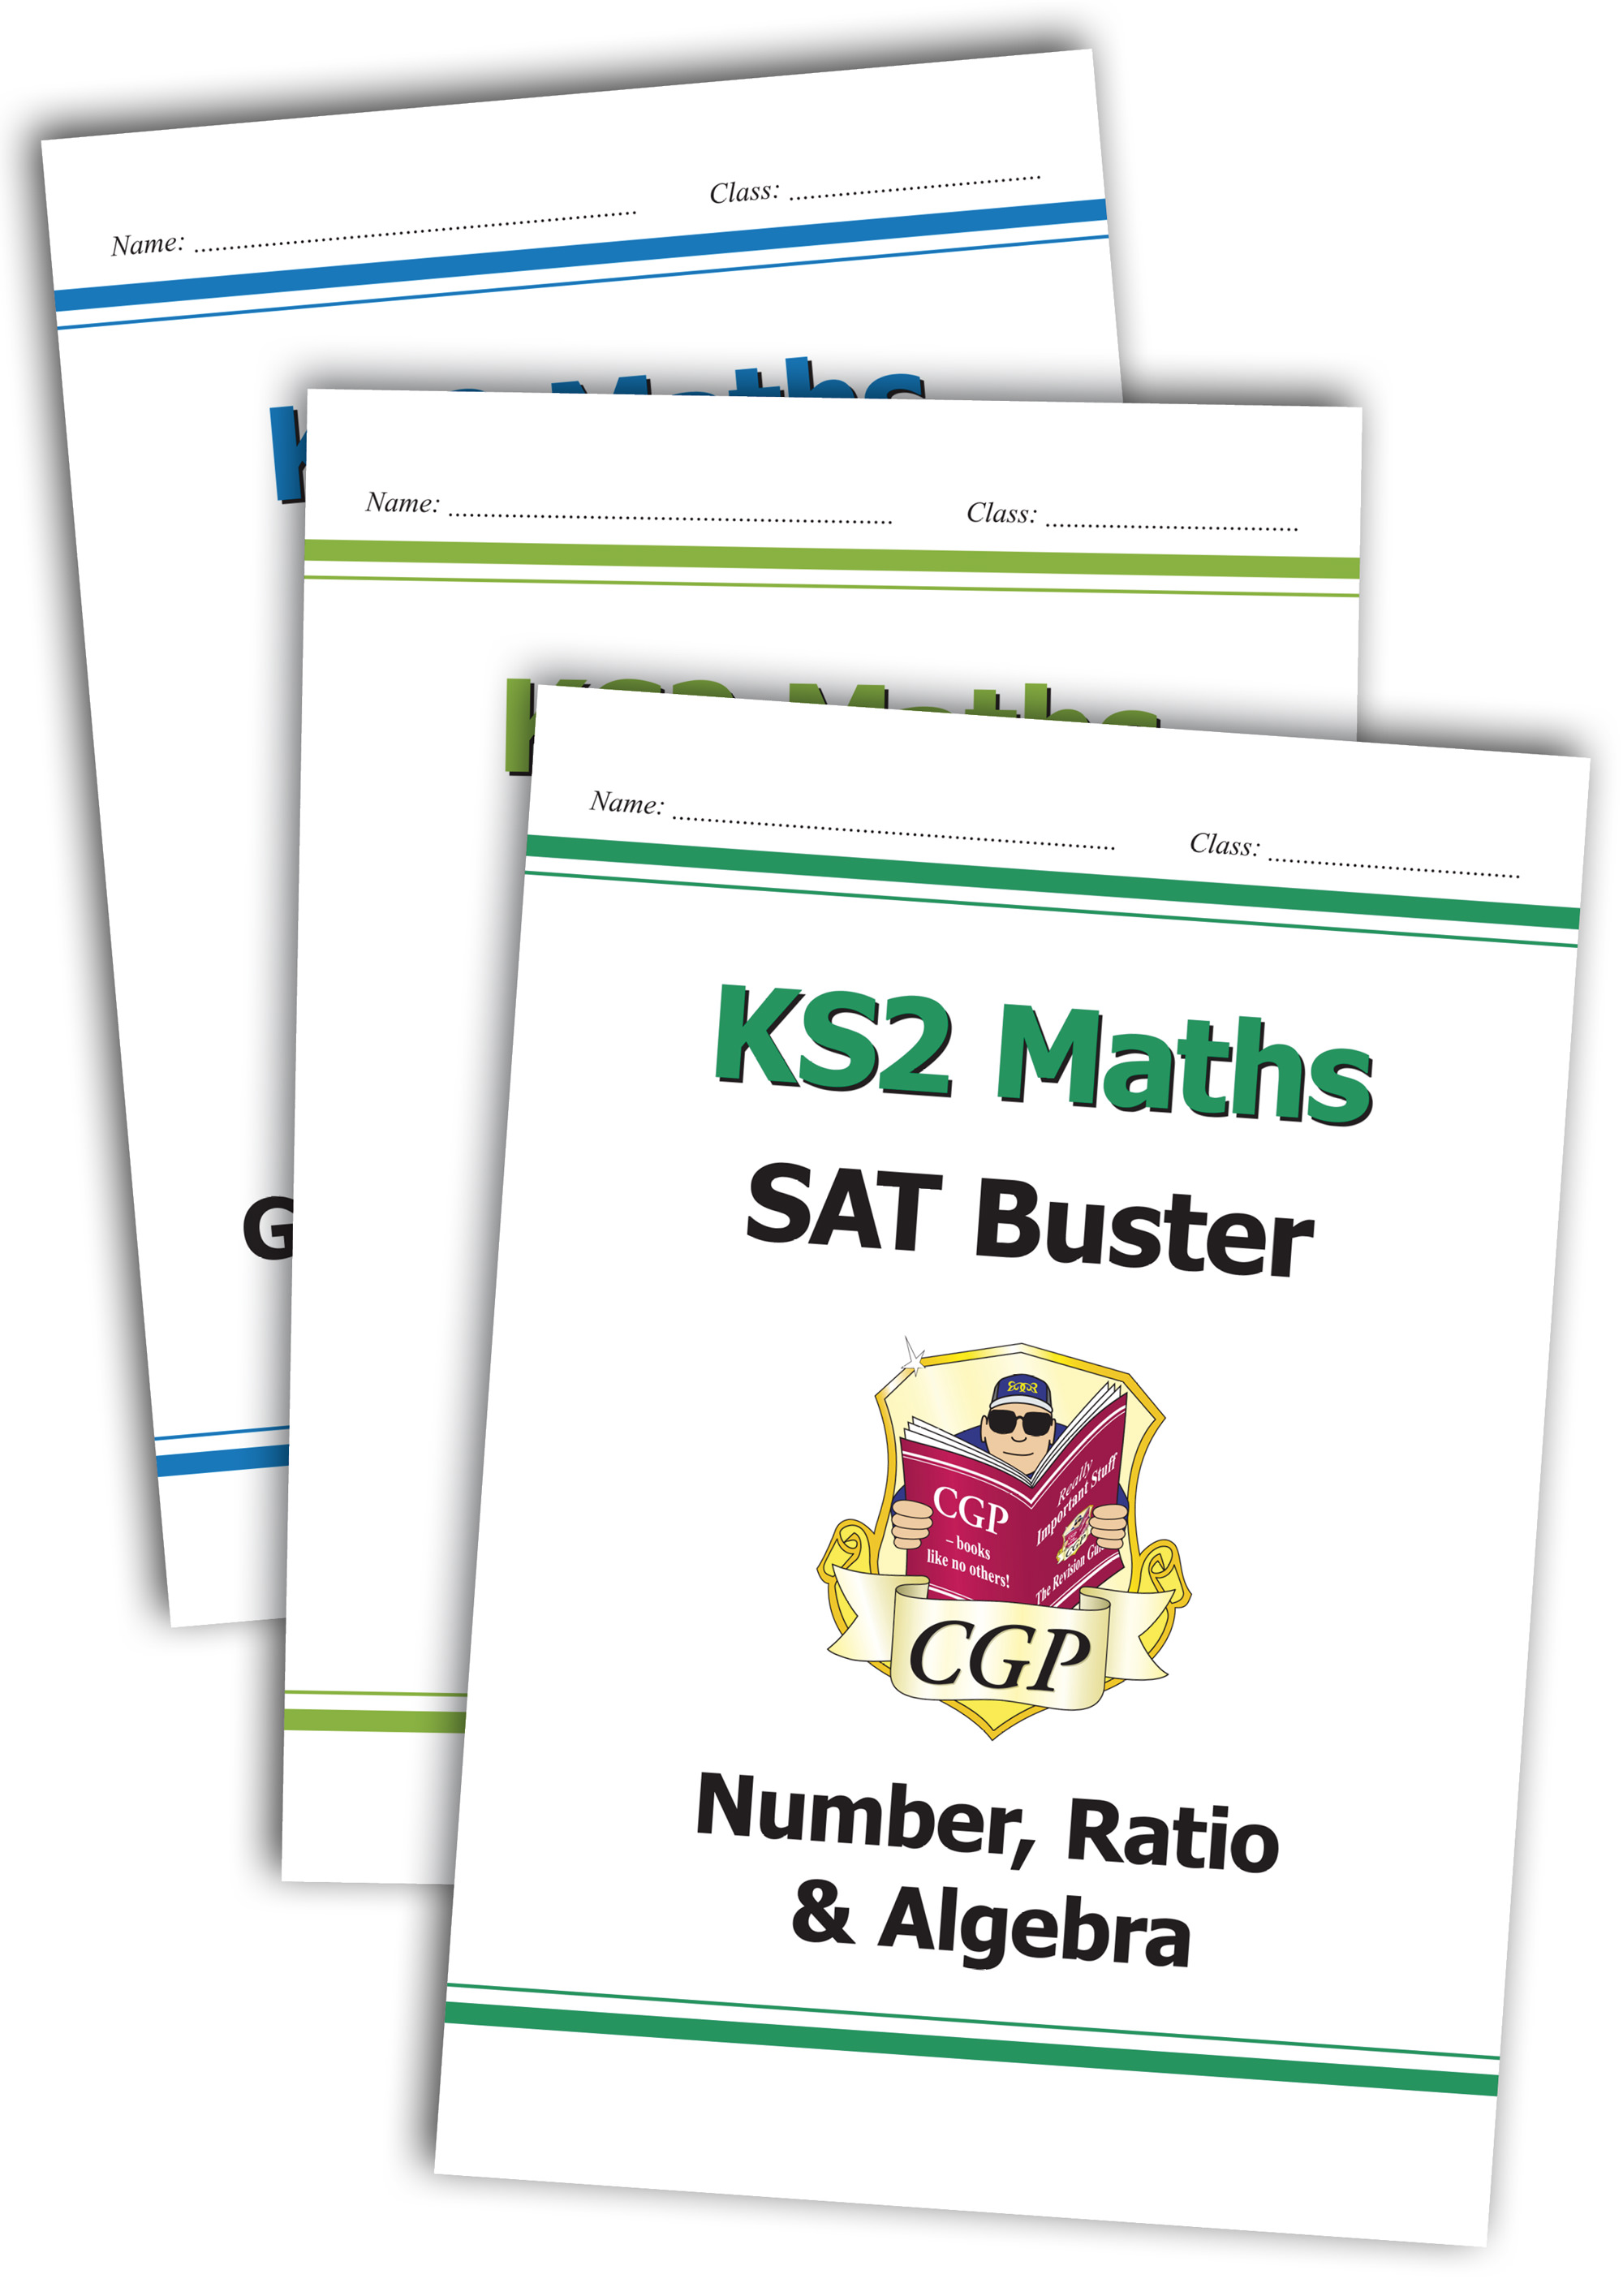 M6SBB23 - Complete KS2 Maths SAT Buster Book 1 Bundle - incl answers (for the 2020 tests)